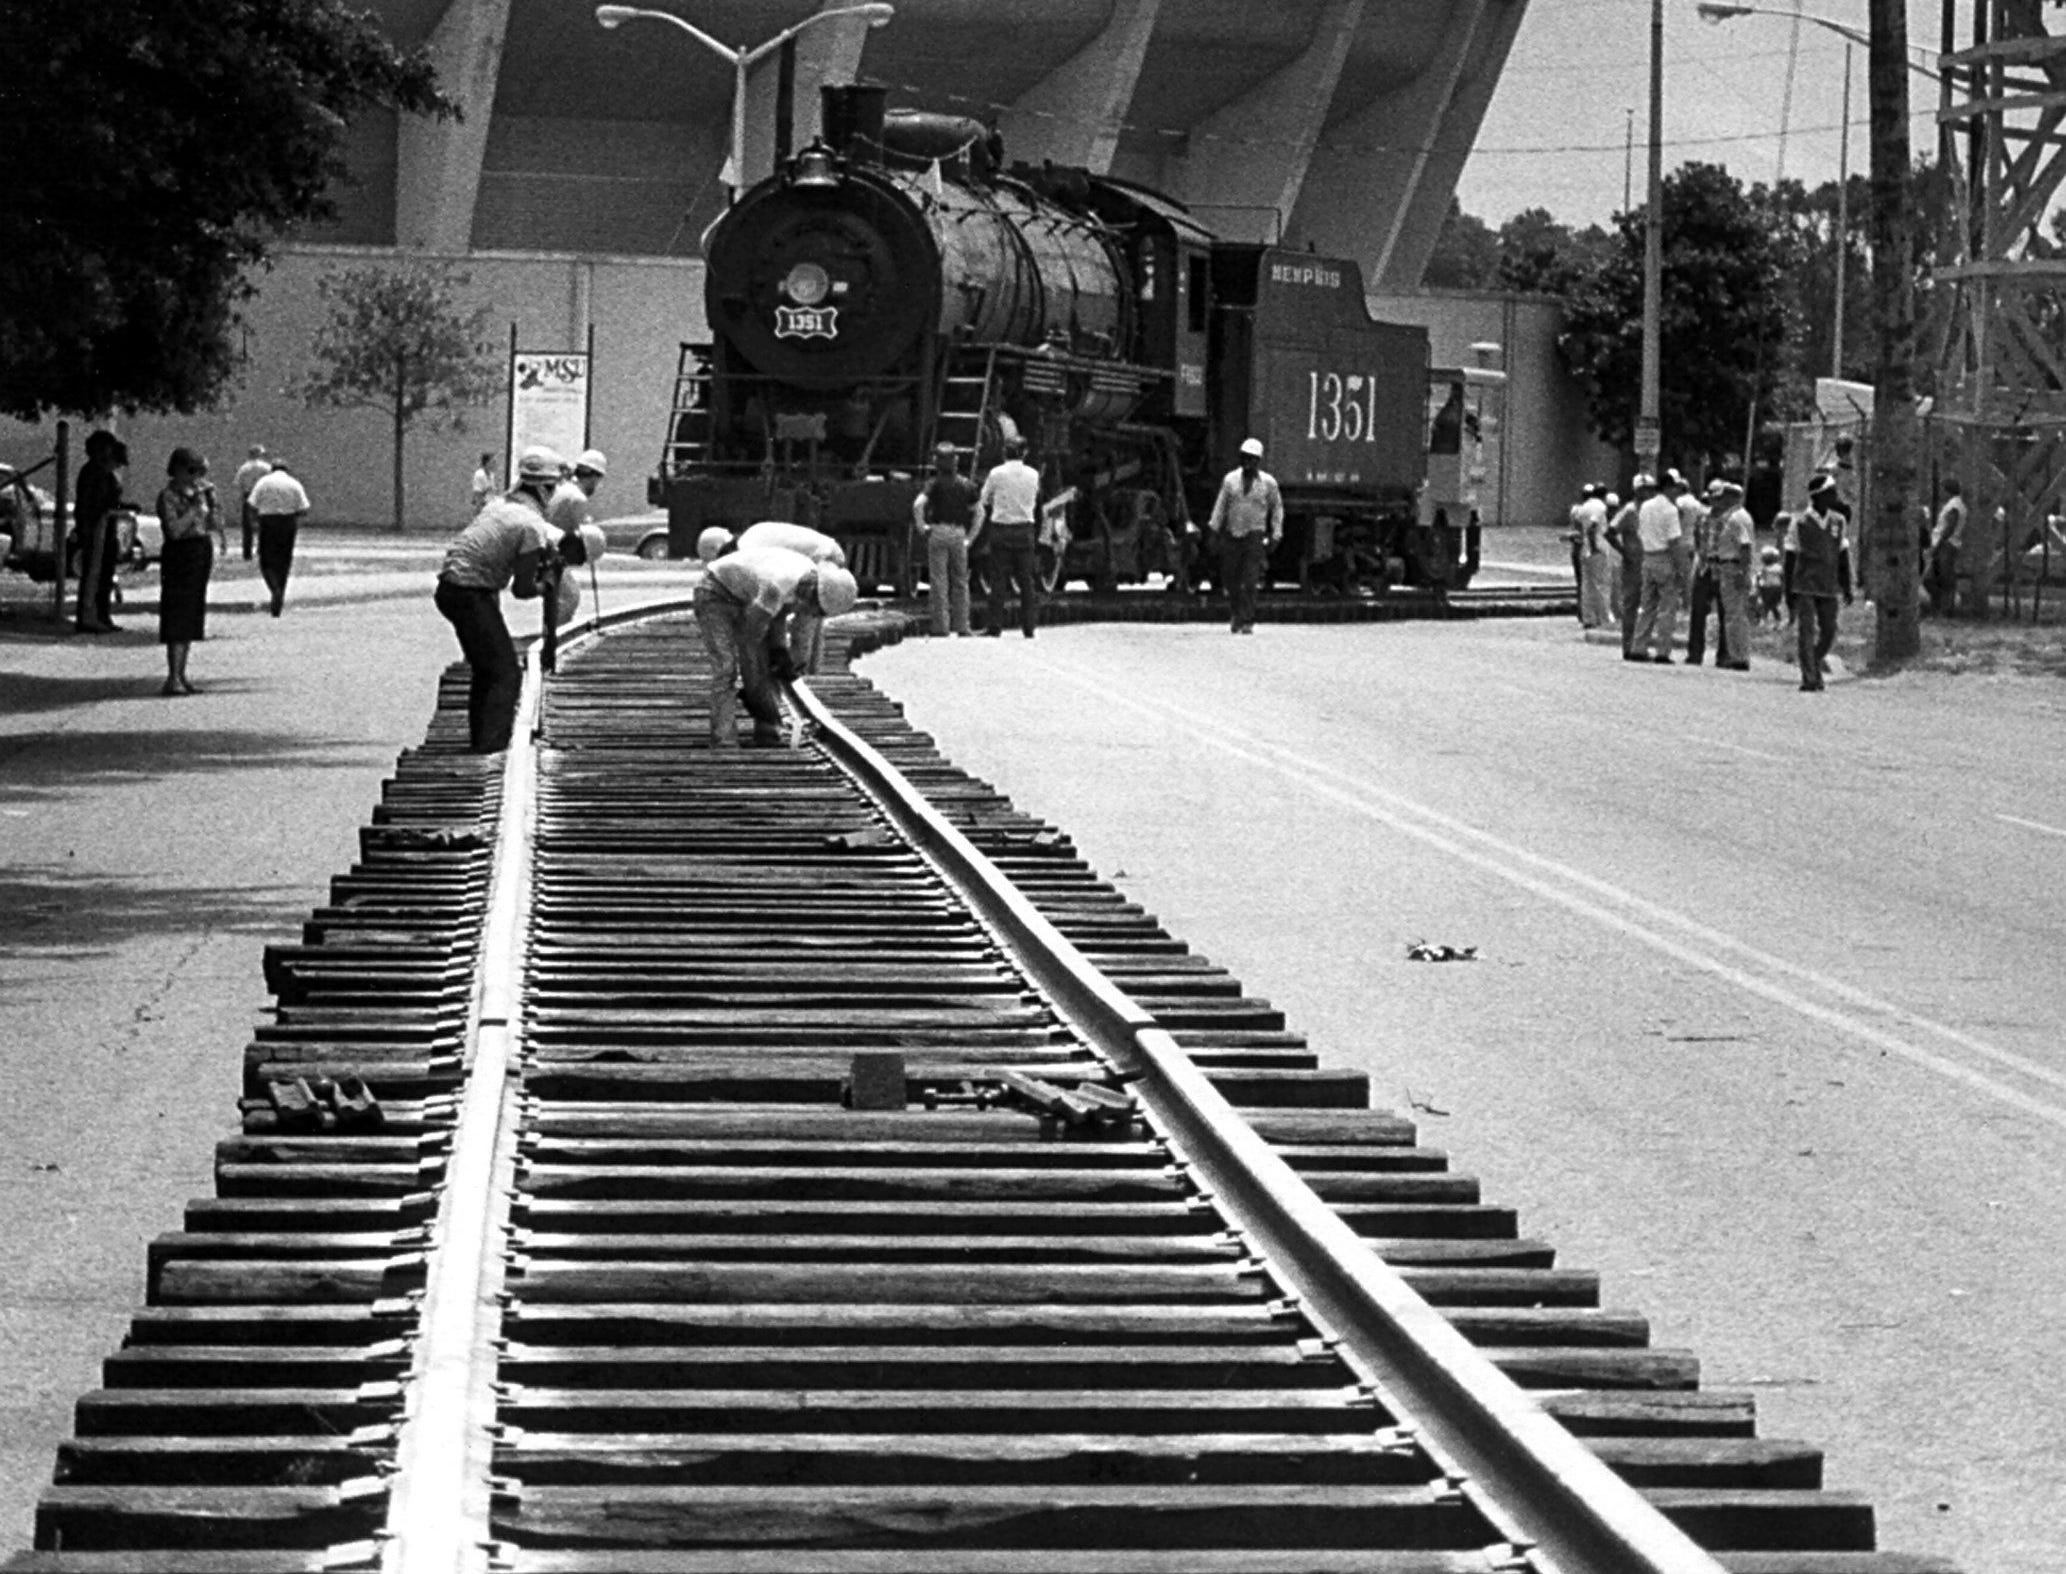 It's a heck of a way to run a railroad, but workmen have little choice while moving the 1912 Frisco locomotive past the Mid-South Coliseum on 30 Jul 1983. Track panels were leap-frogged around the 150-ton engine, displayed at the fairgrounds for 31 years. The engine was towed toward Southern Railway yards and eventually will be moved to a shop for restoration before a trip to next year's World's Fair in New Orleans.